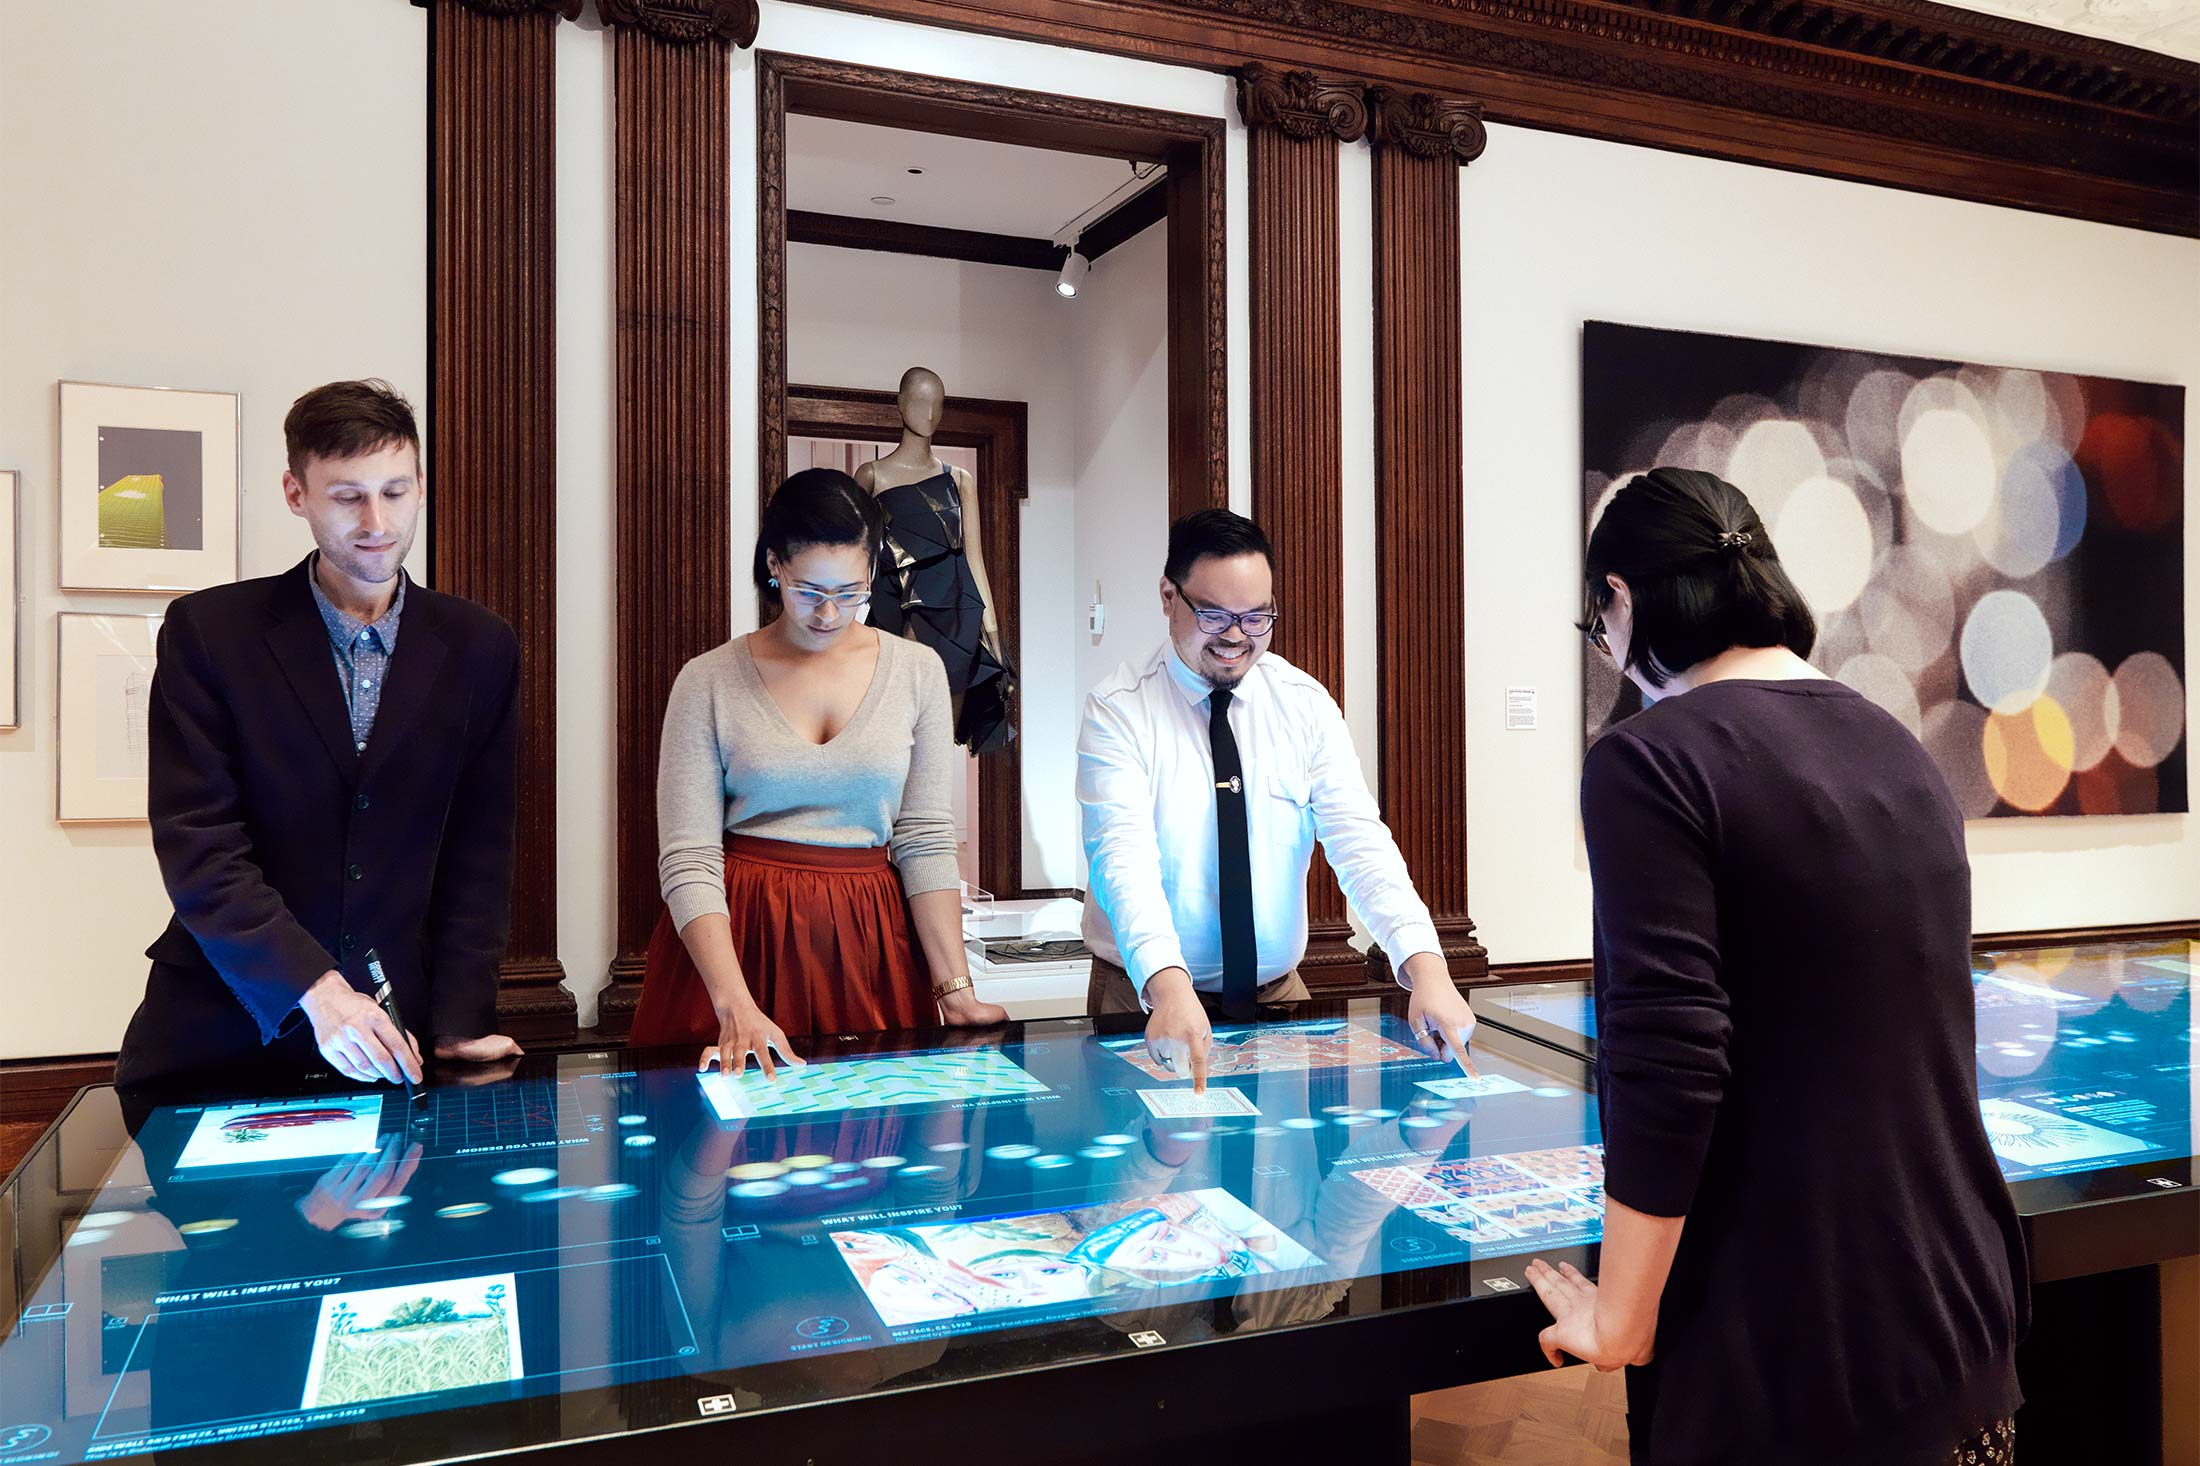 Cooper Hewitt's interactive tables let visitors mingle with one another and with the exhibits.